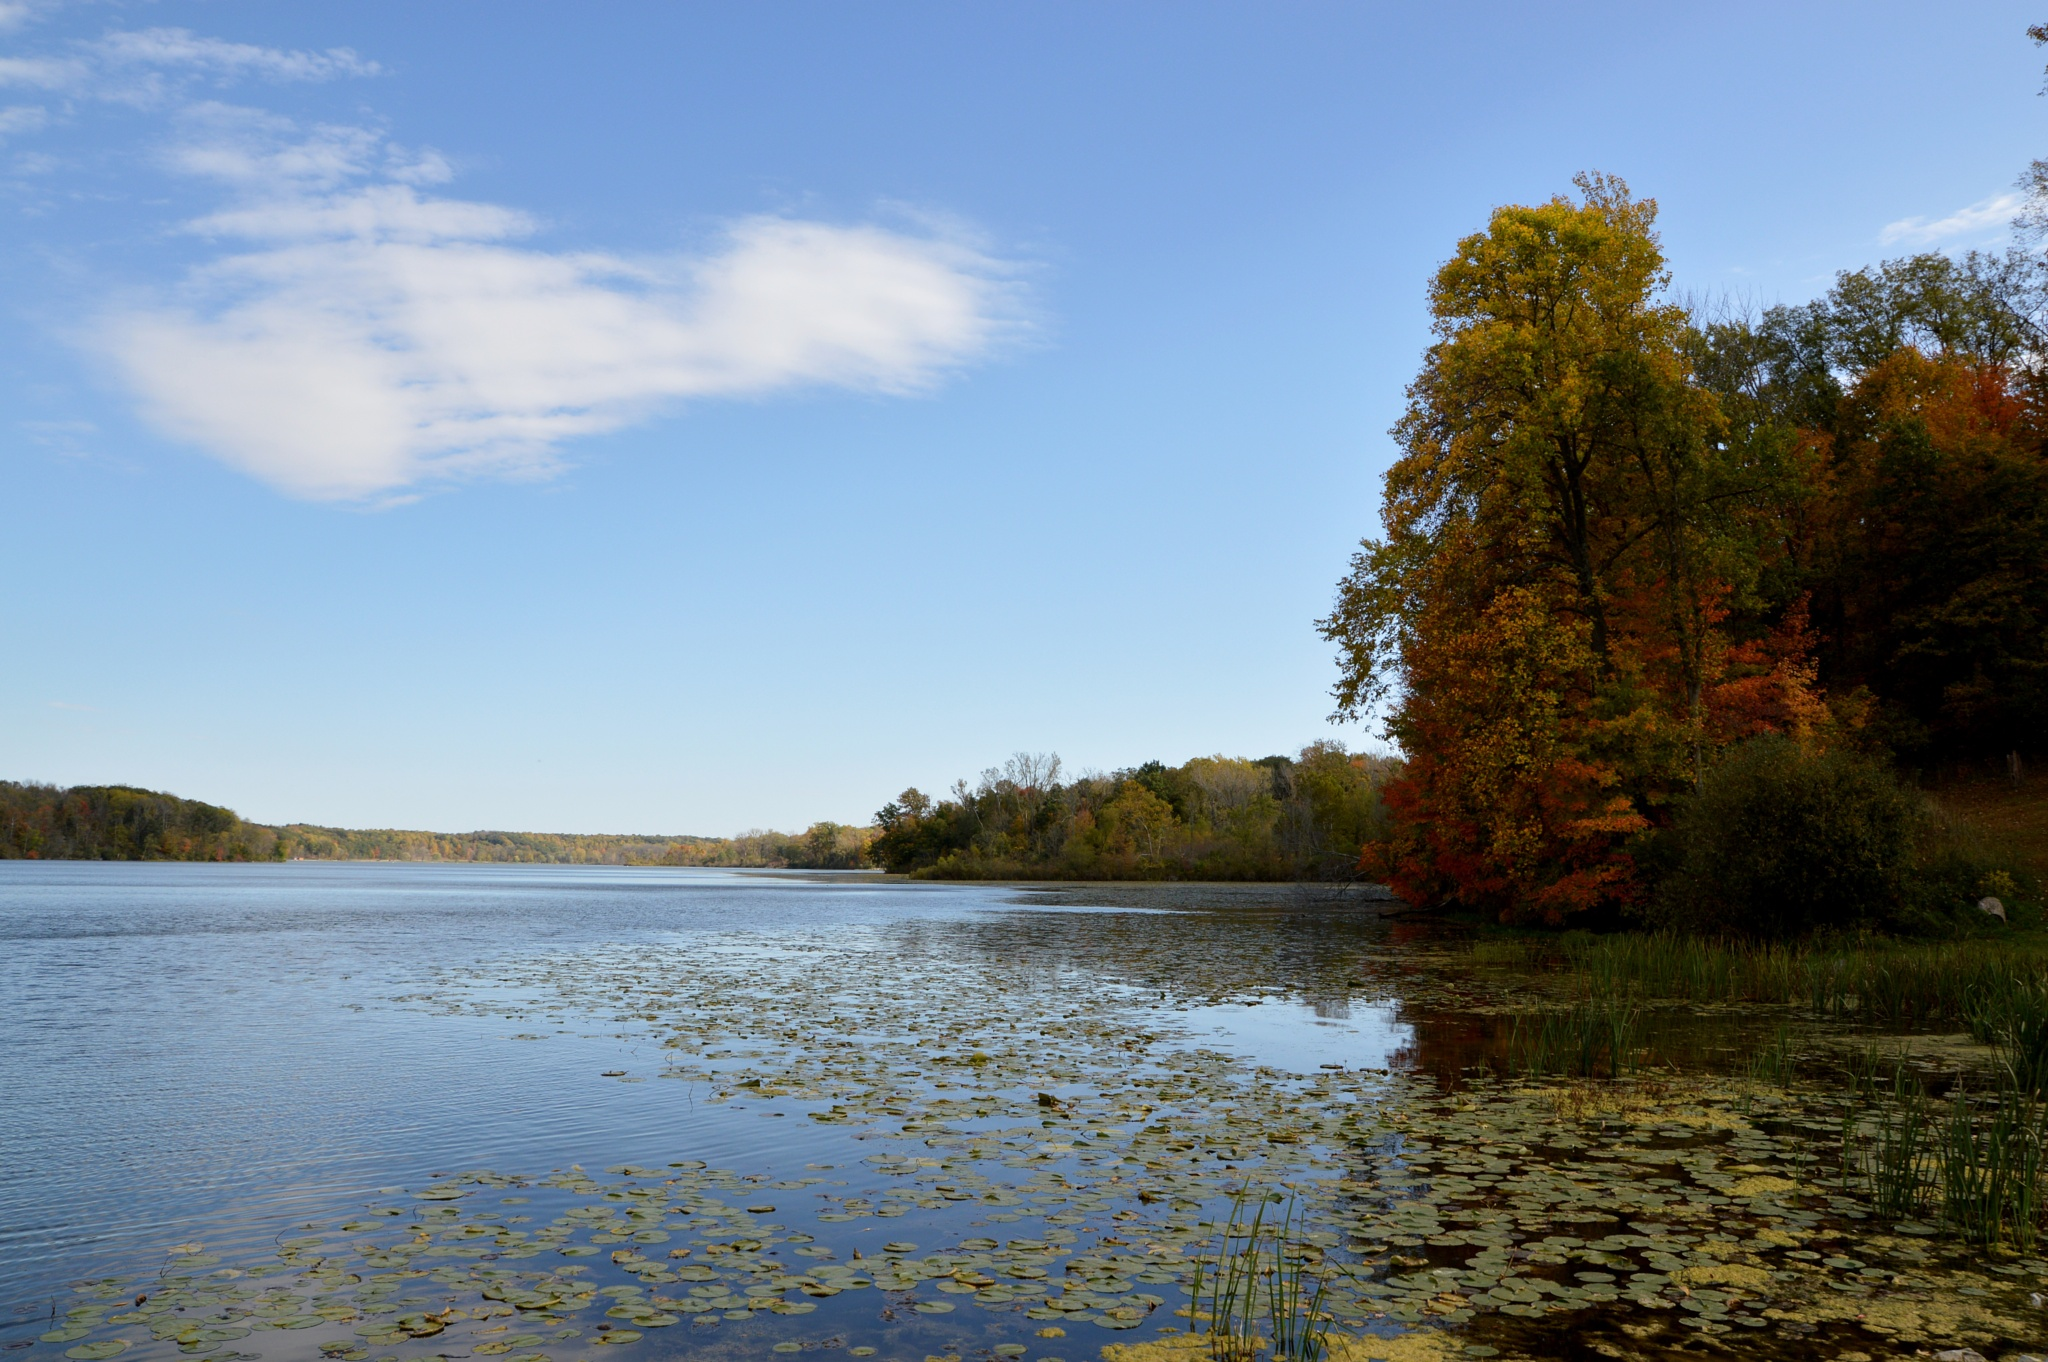 View of the lake by Doug Fosnight